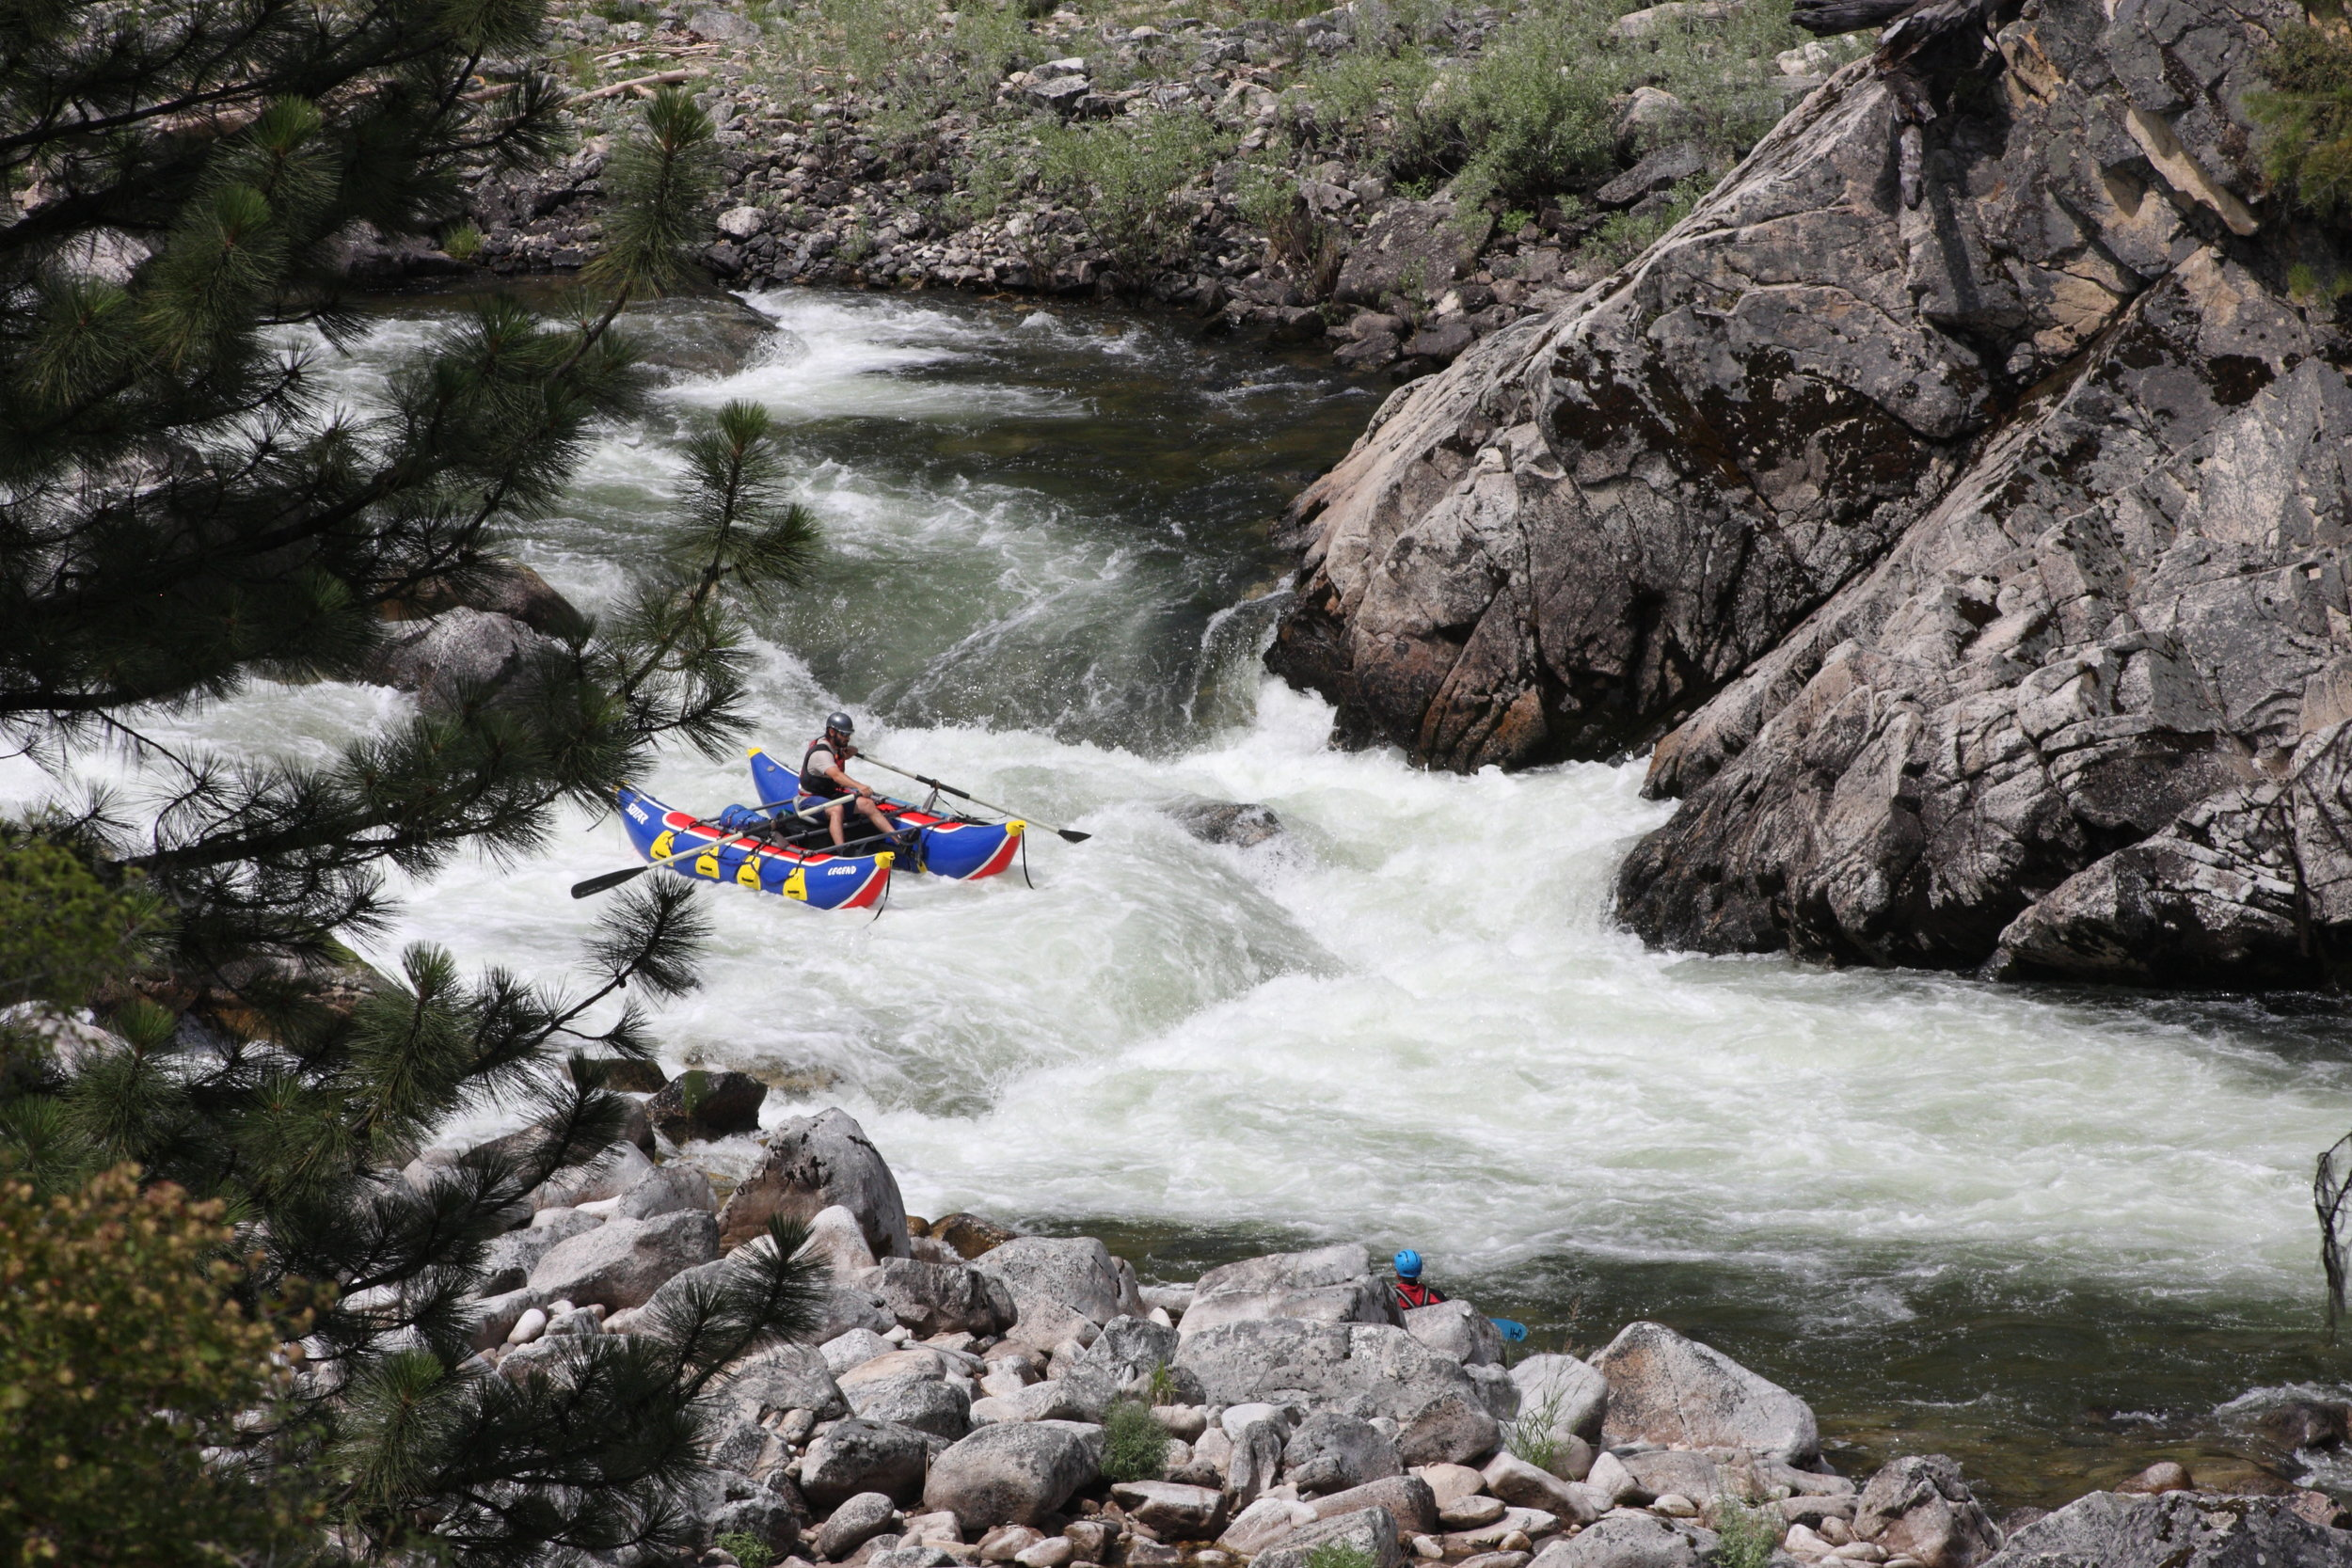 World-class South Fork whitewater